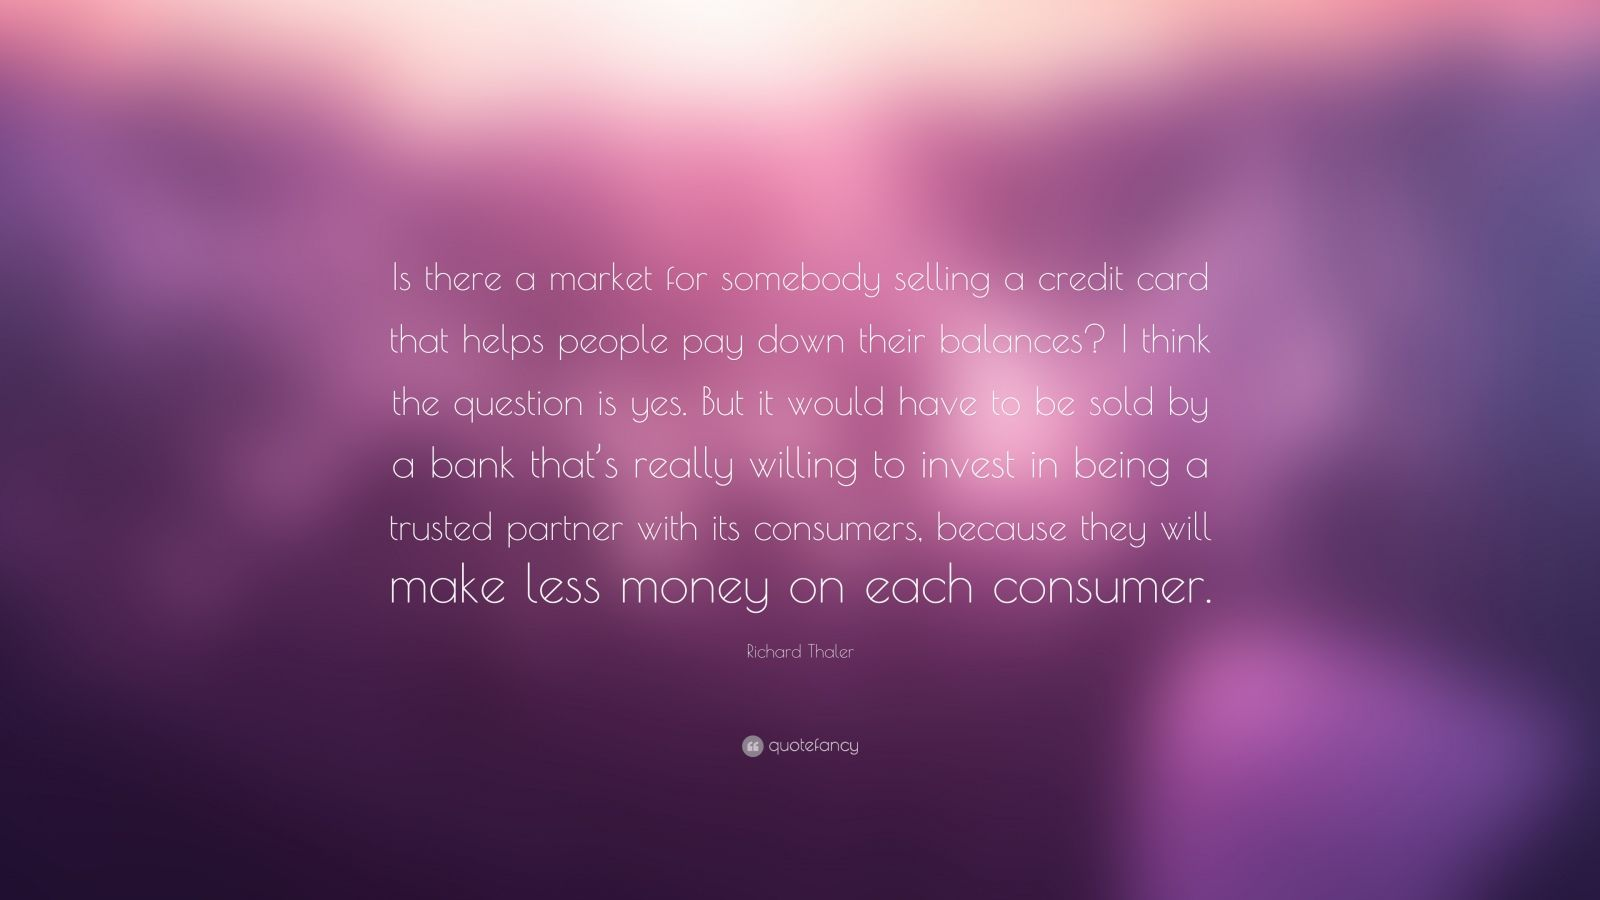 """Richard Thaler Quote: """"Is there a market for somebody selling a credit card that helps people pay down their balances? I think the question is yes. But it would have to be sold by a bank that's really willing to invest in being a trusted partner with its consumers, because they will make less money on each consumer."""""""